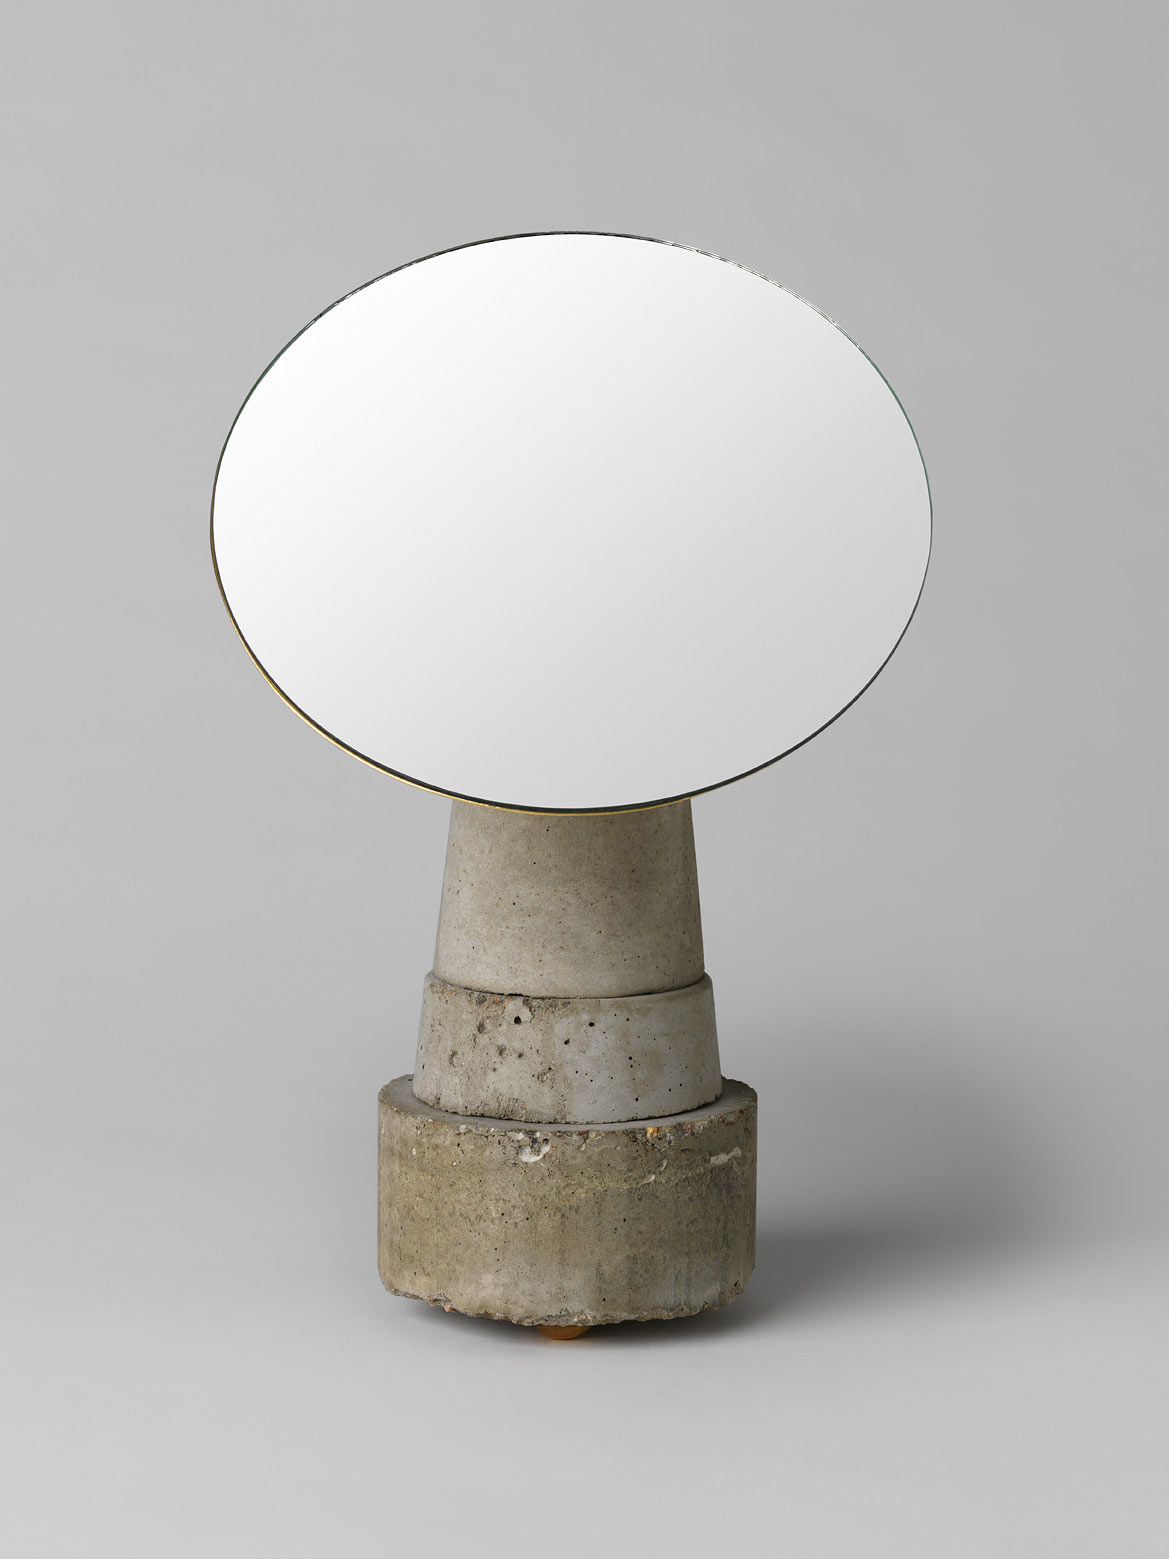 david-taylor-considered-objects-mirror